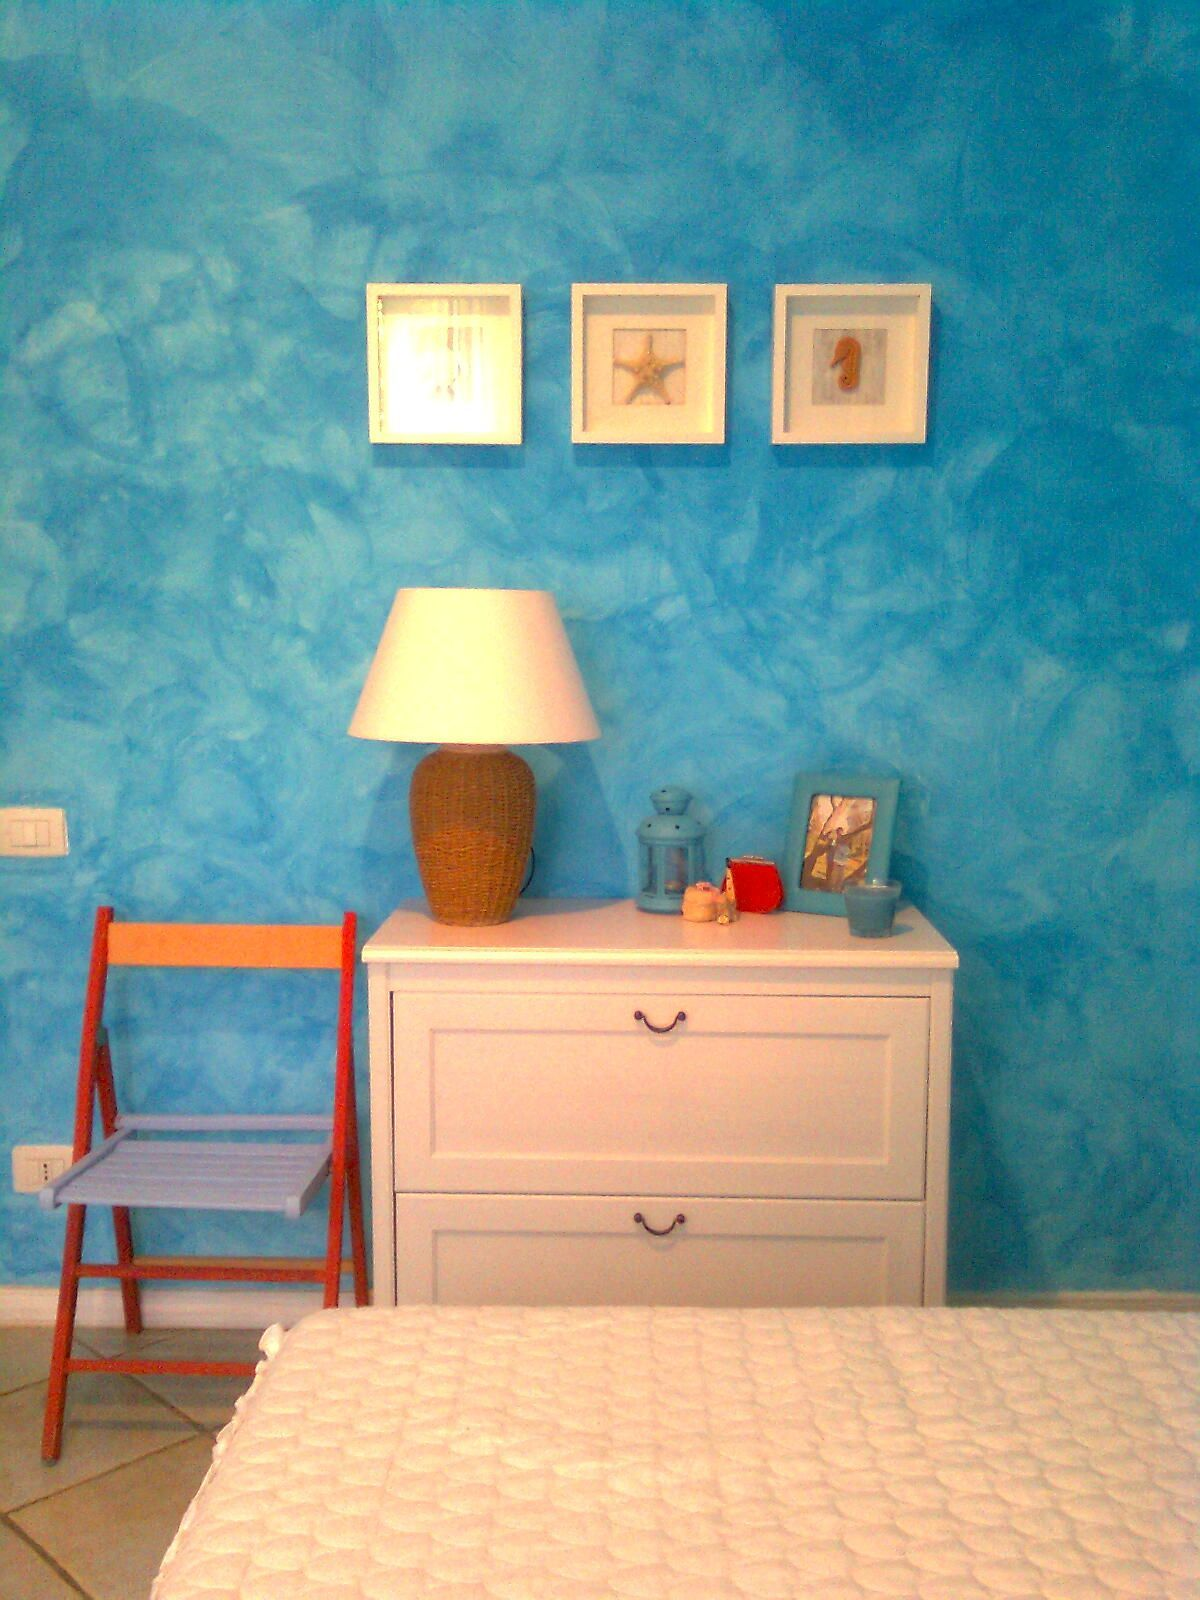 Texture Design For Bedroom Wall wall texture designs for